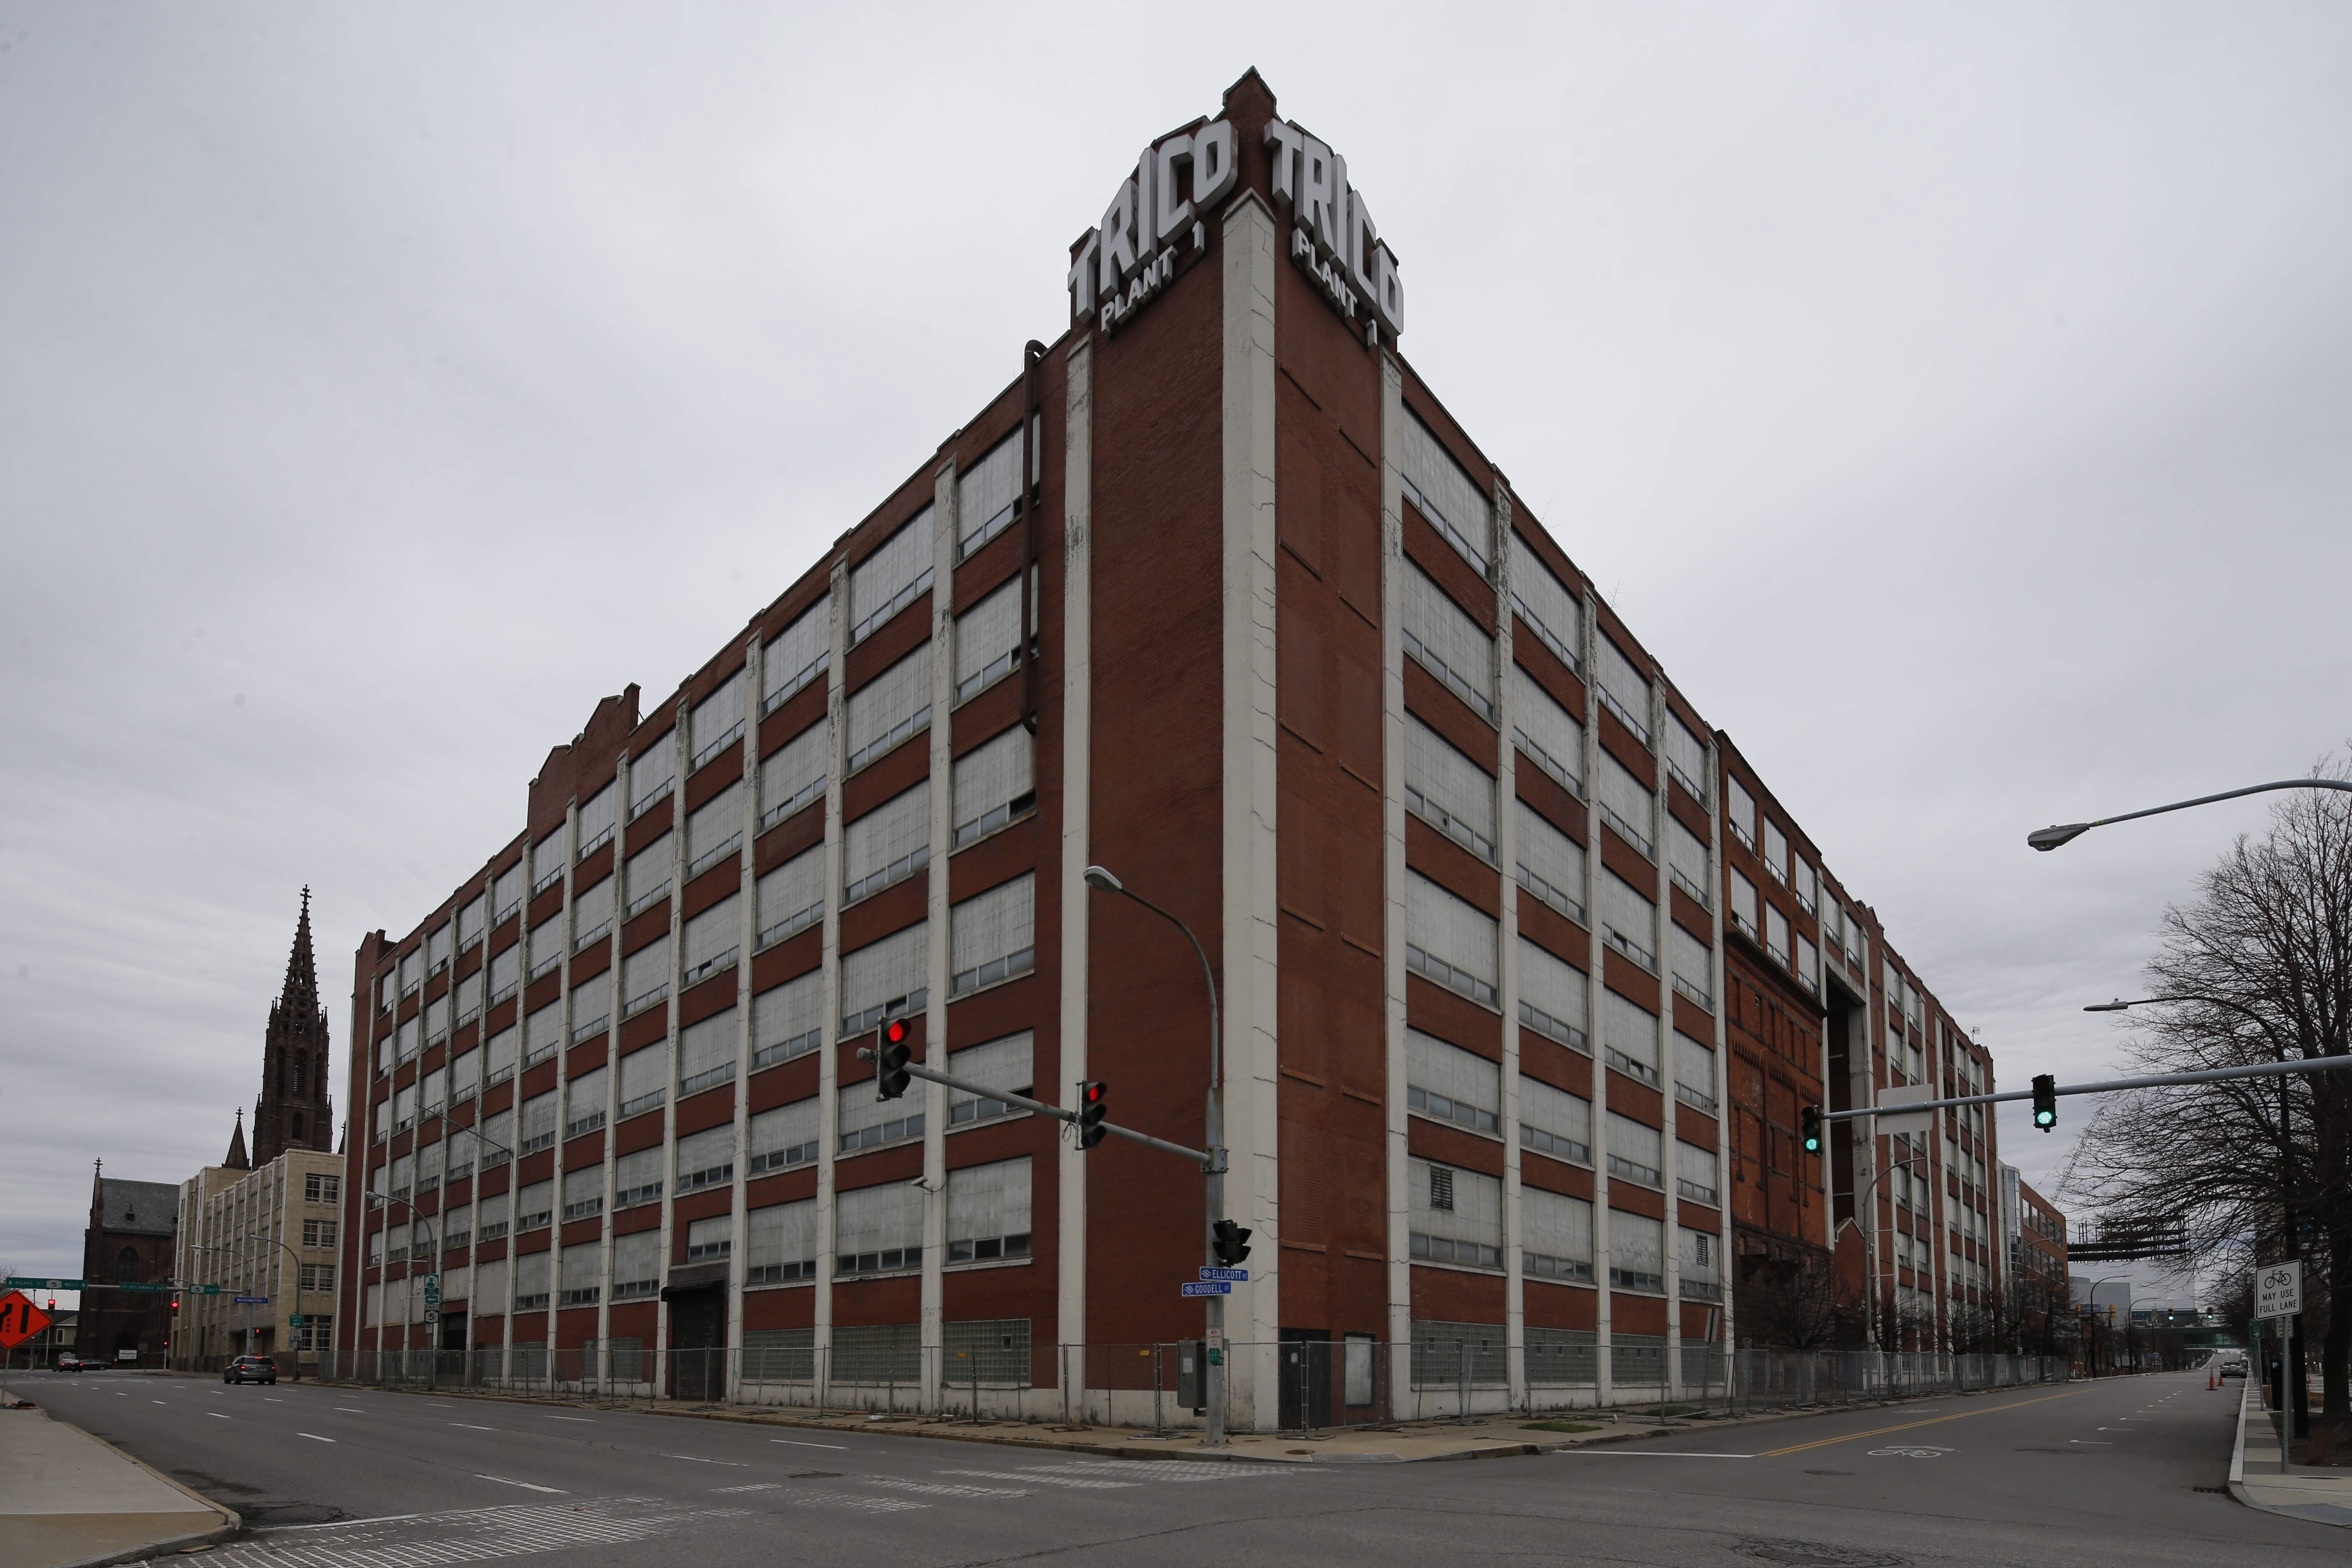 Krog Corp. plans to convert the former Trico building on Ellicott and Goodyear streets into a mixed-use complex.